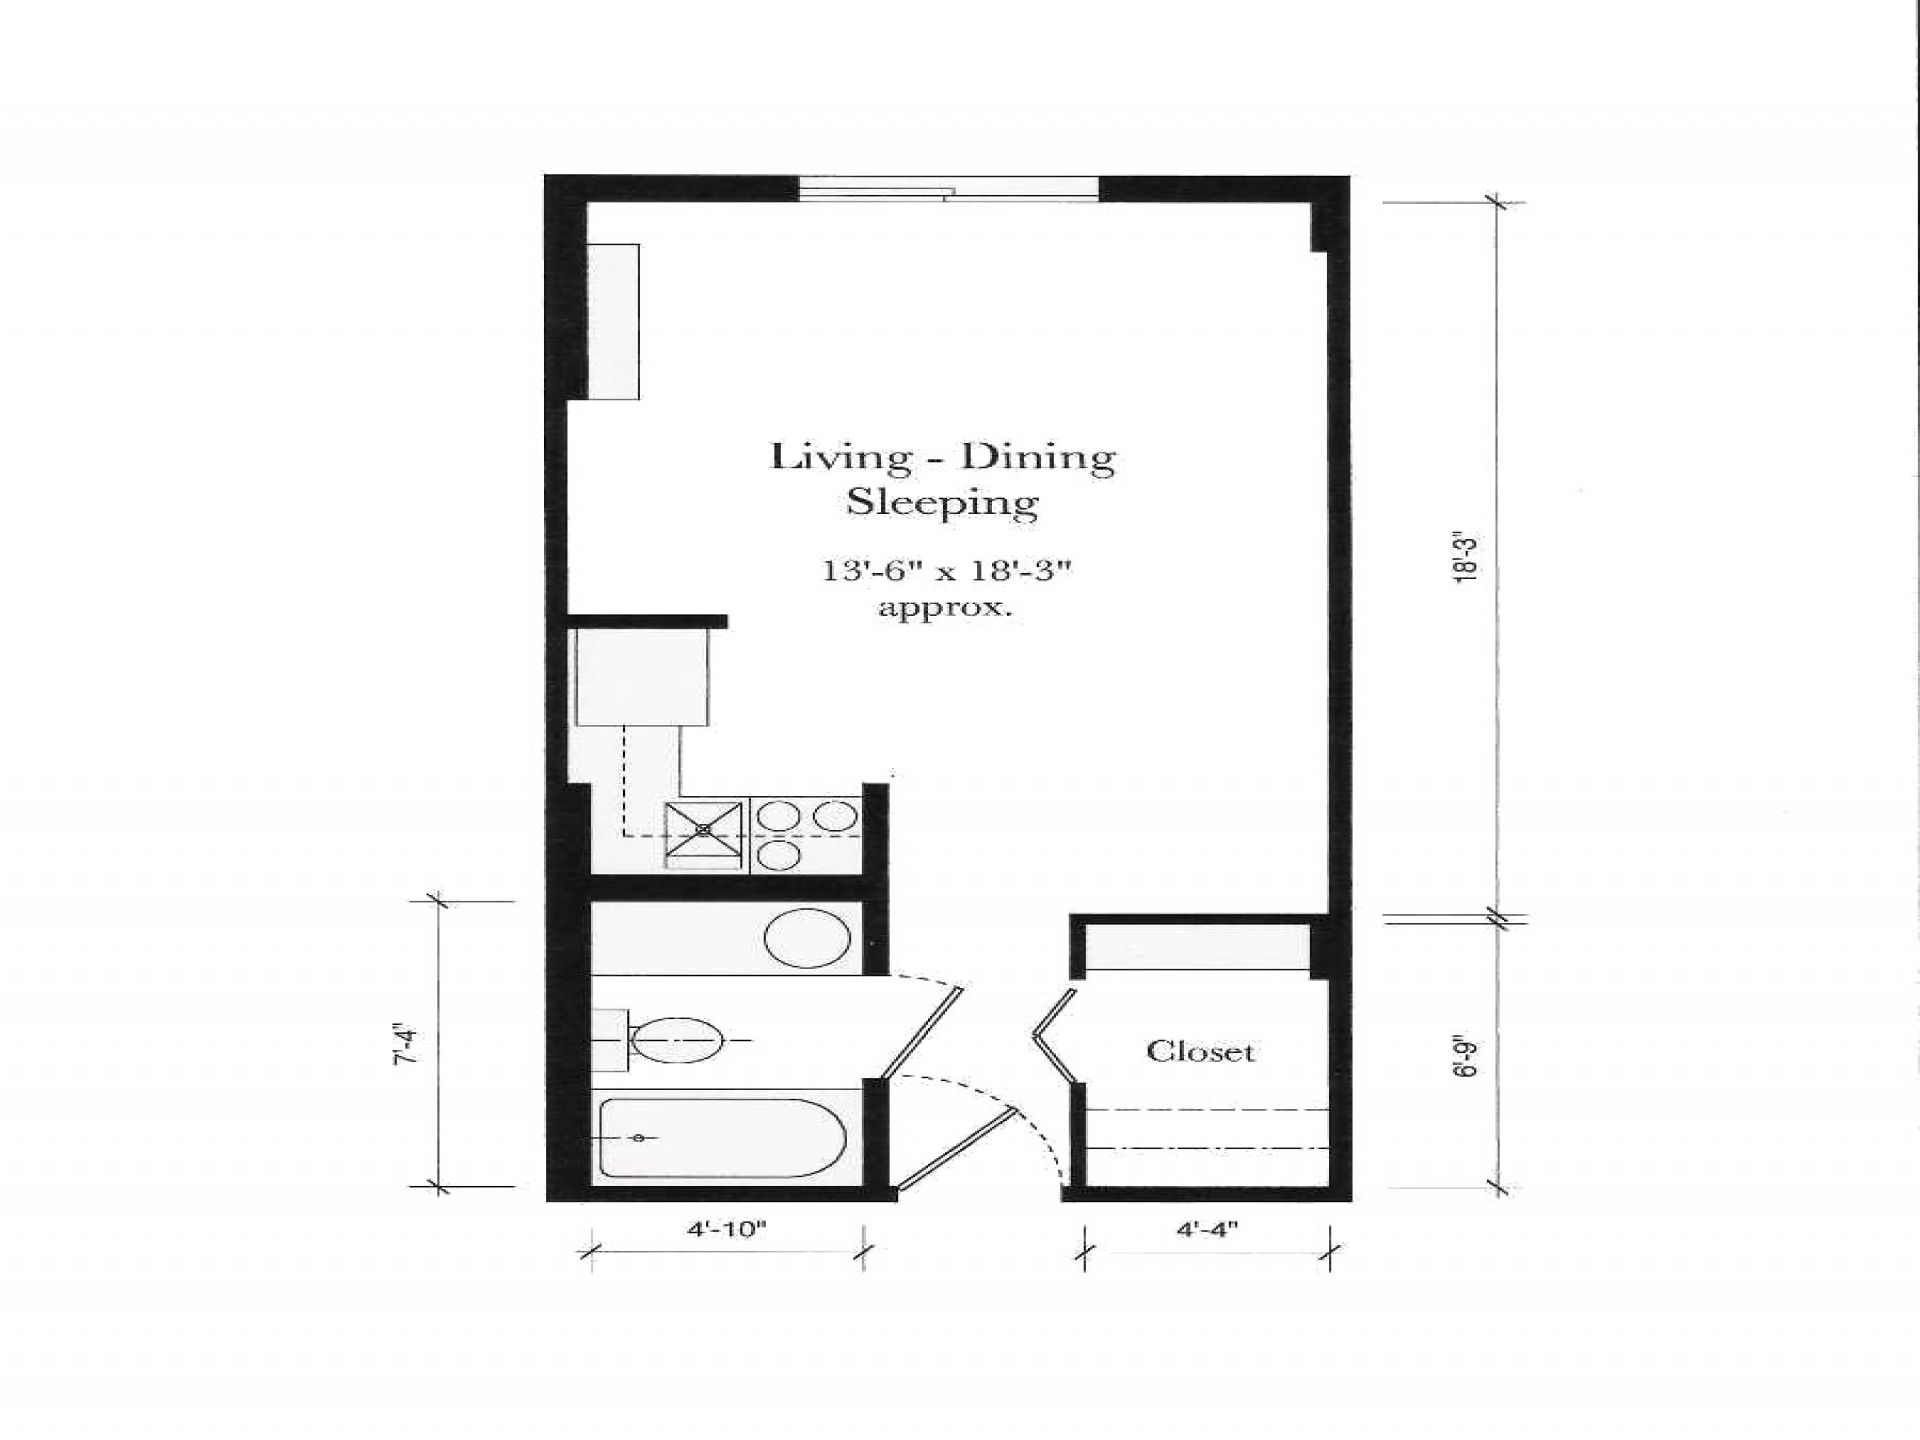 Apartment studio floor plan simple floor design studio for Studio floor plans 300 sq ft